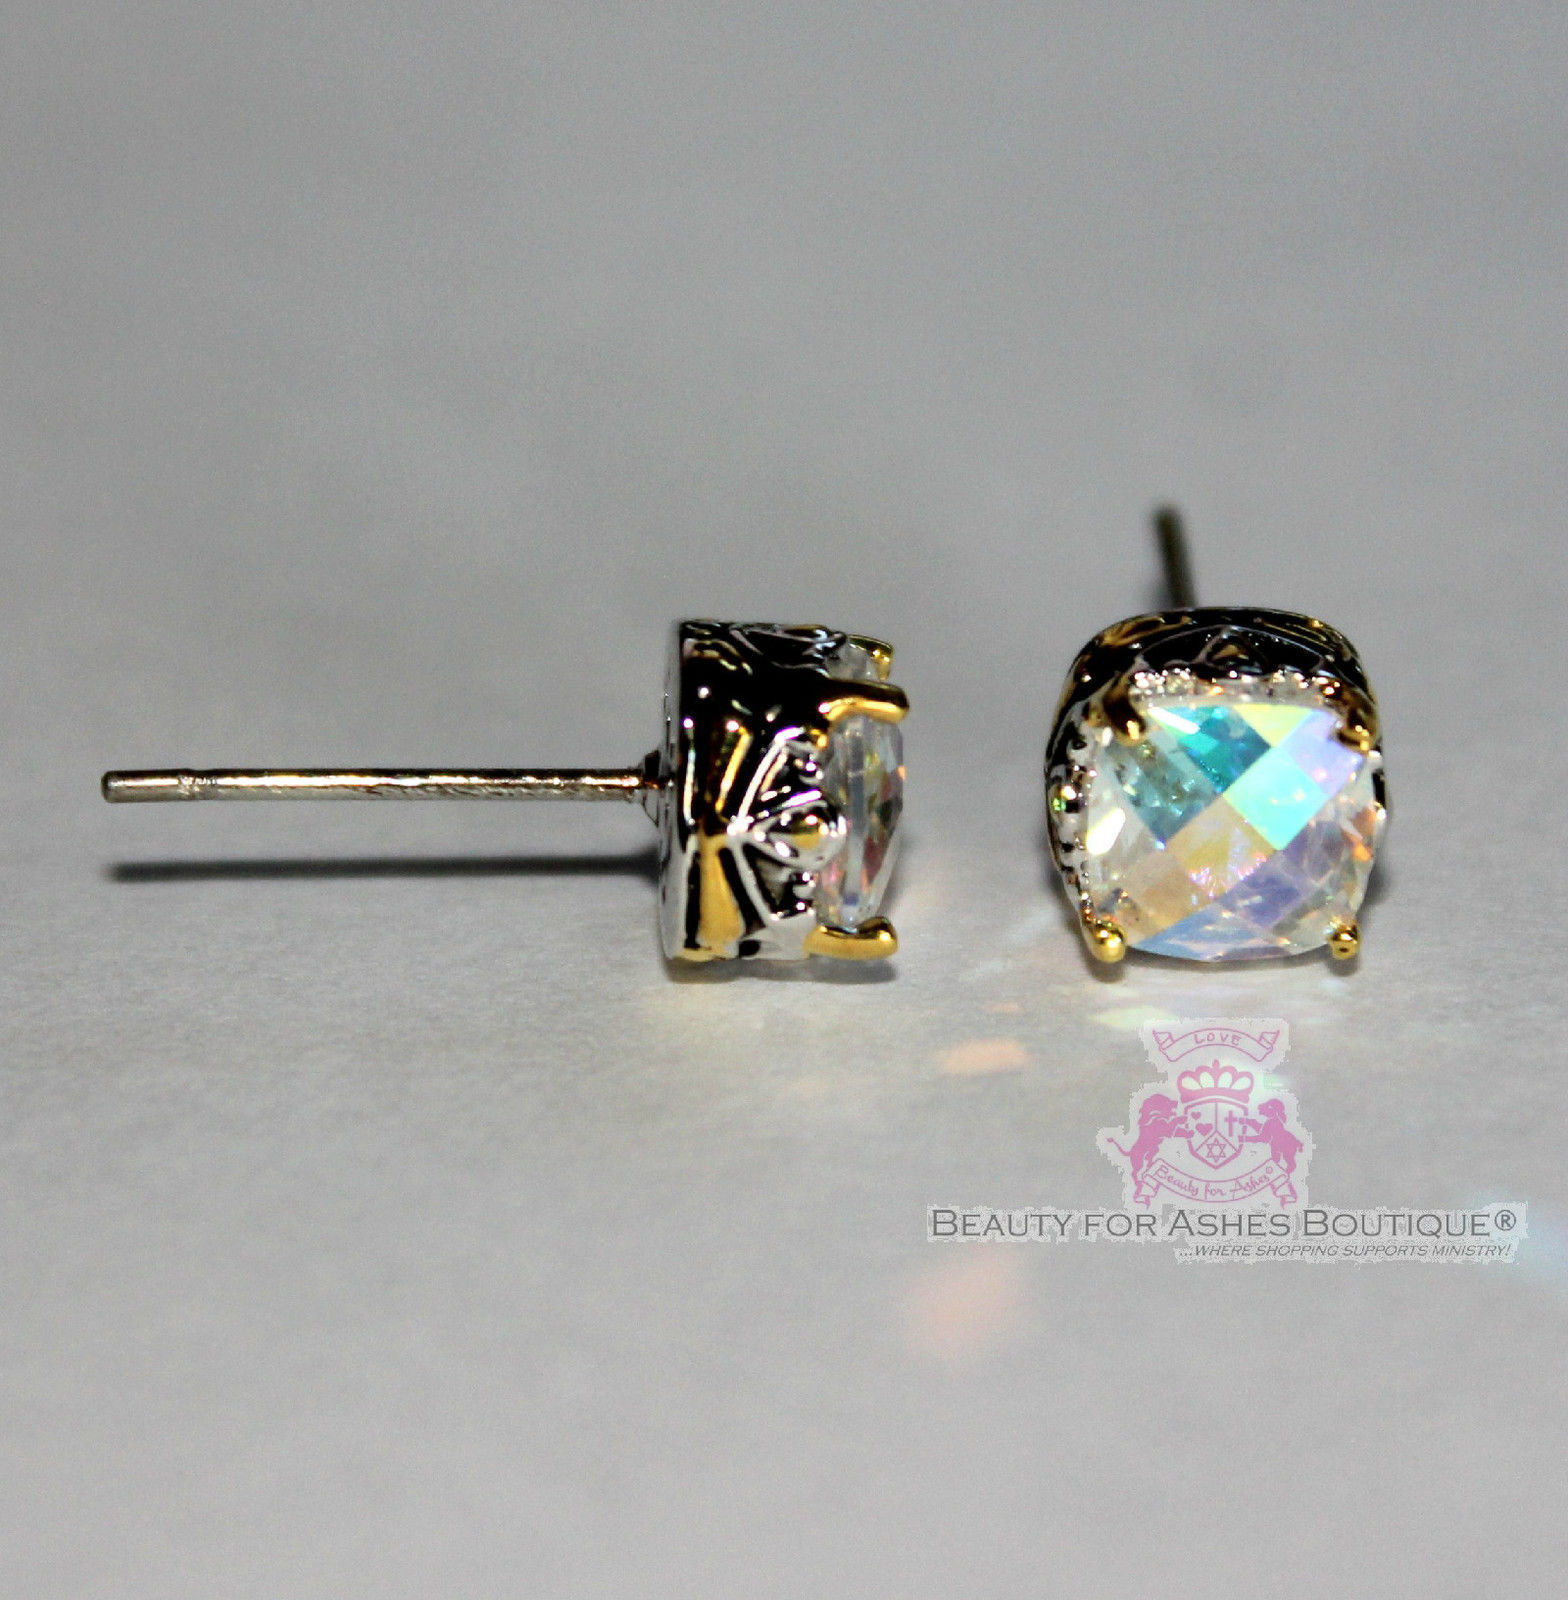 Beauty for Ashes 6mm Throne Room Mini CZ Checkerboard Cut Center Post Earrings